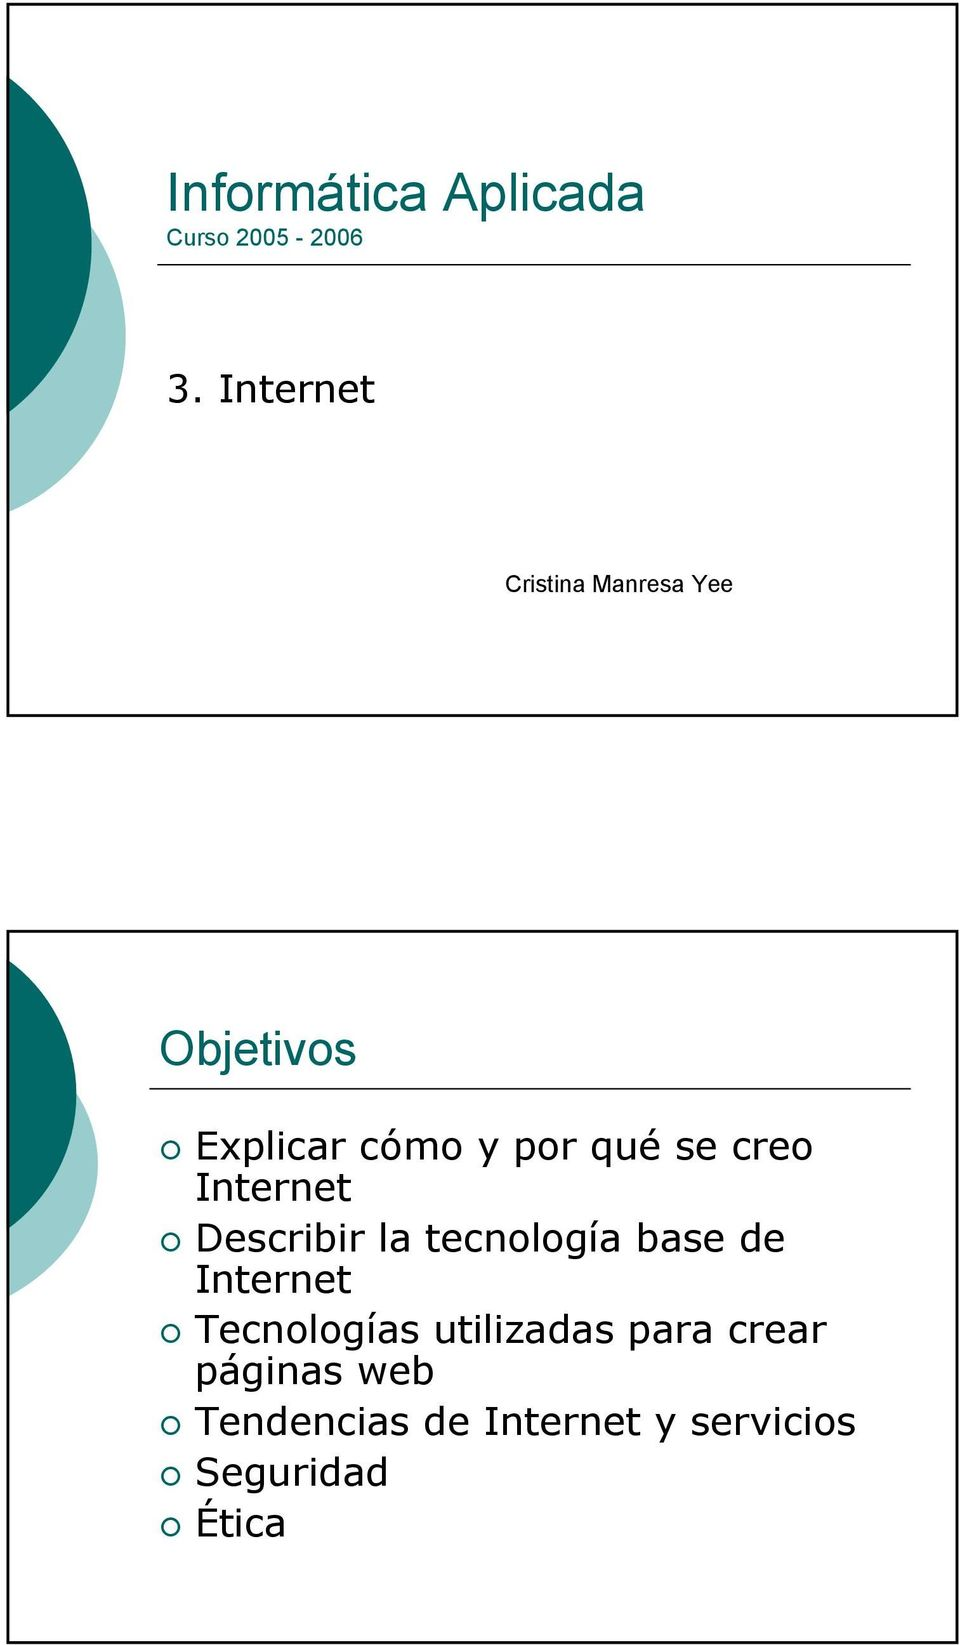 se creo Internet Describir la tecnología base de Internet